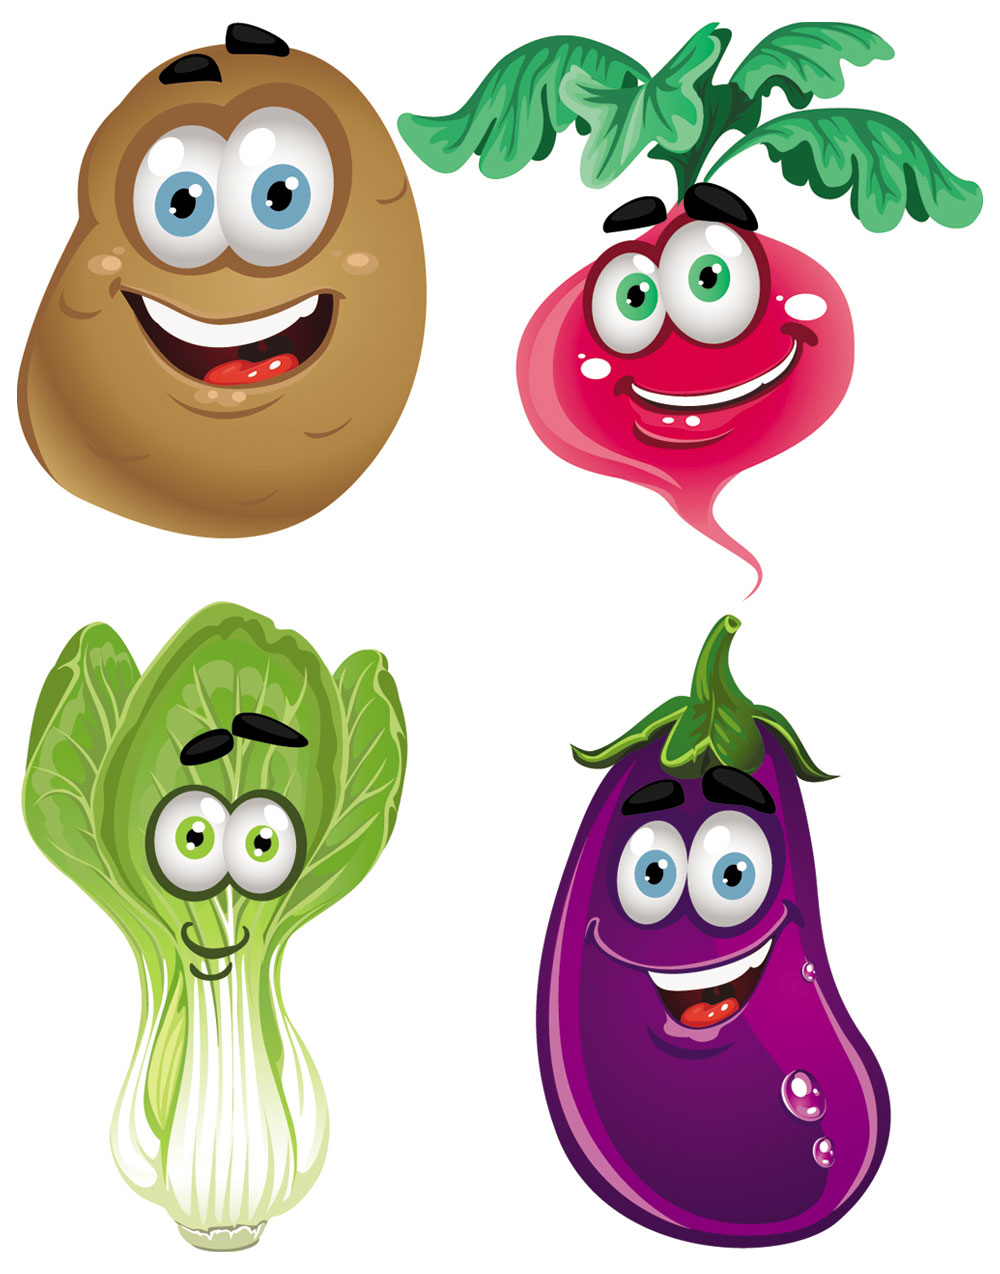 Vegetable Cartoon Image Vector 2   Download Free Vectors